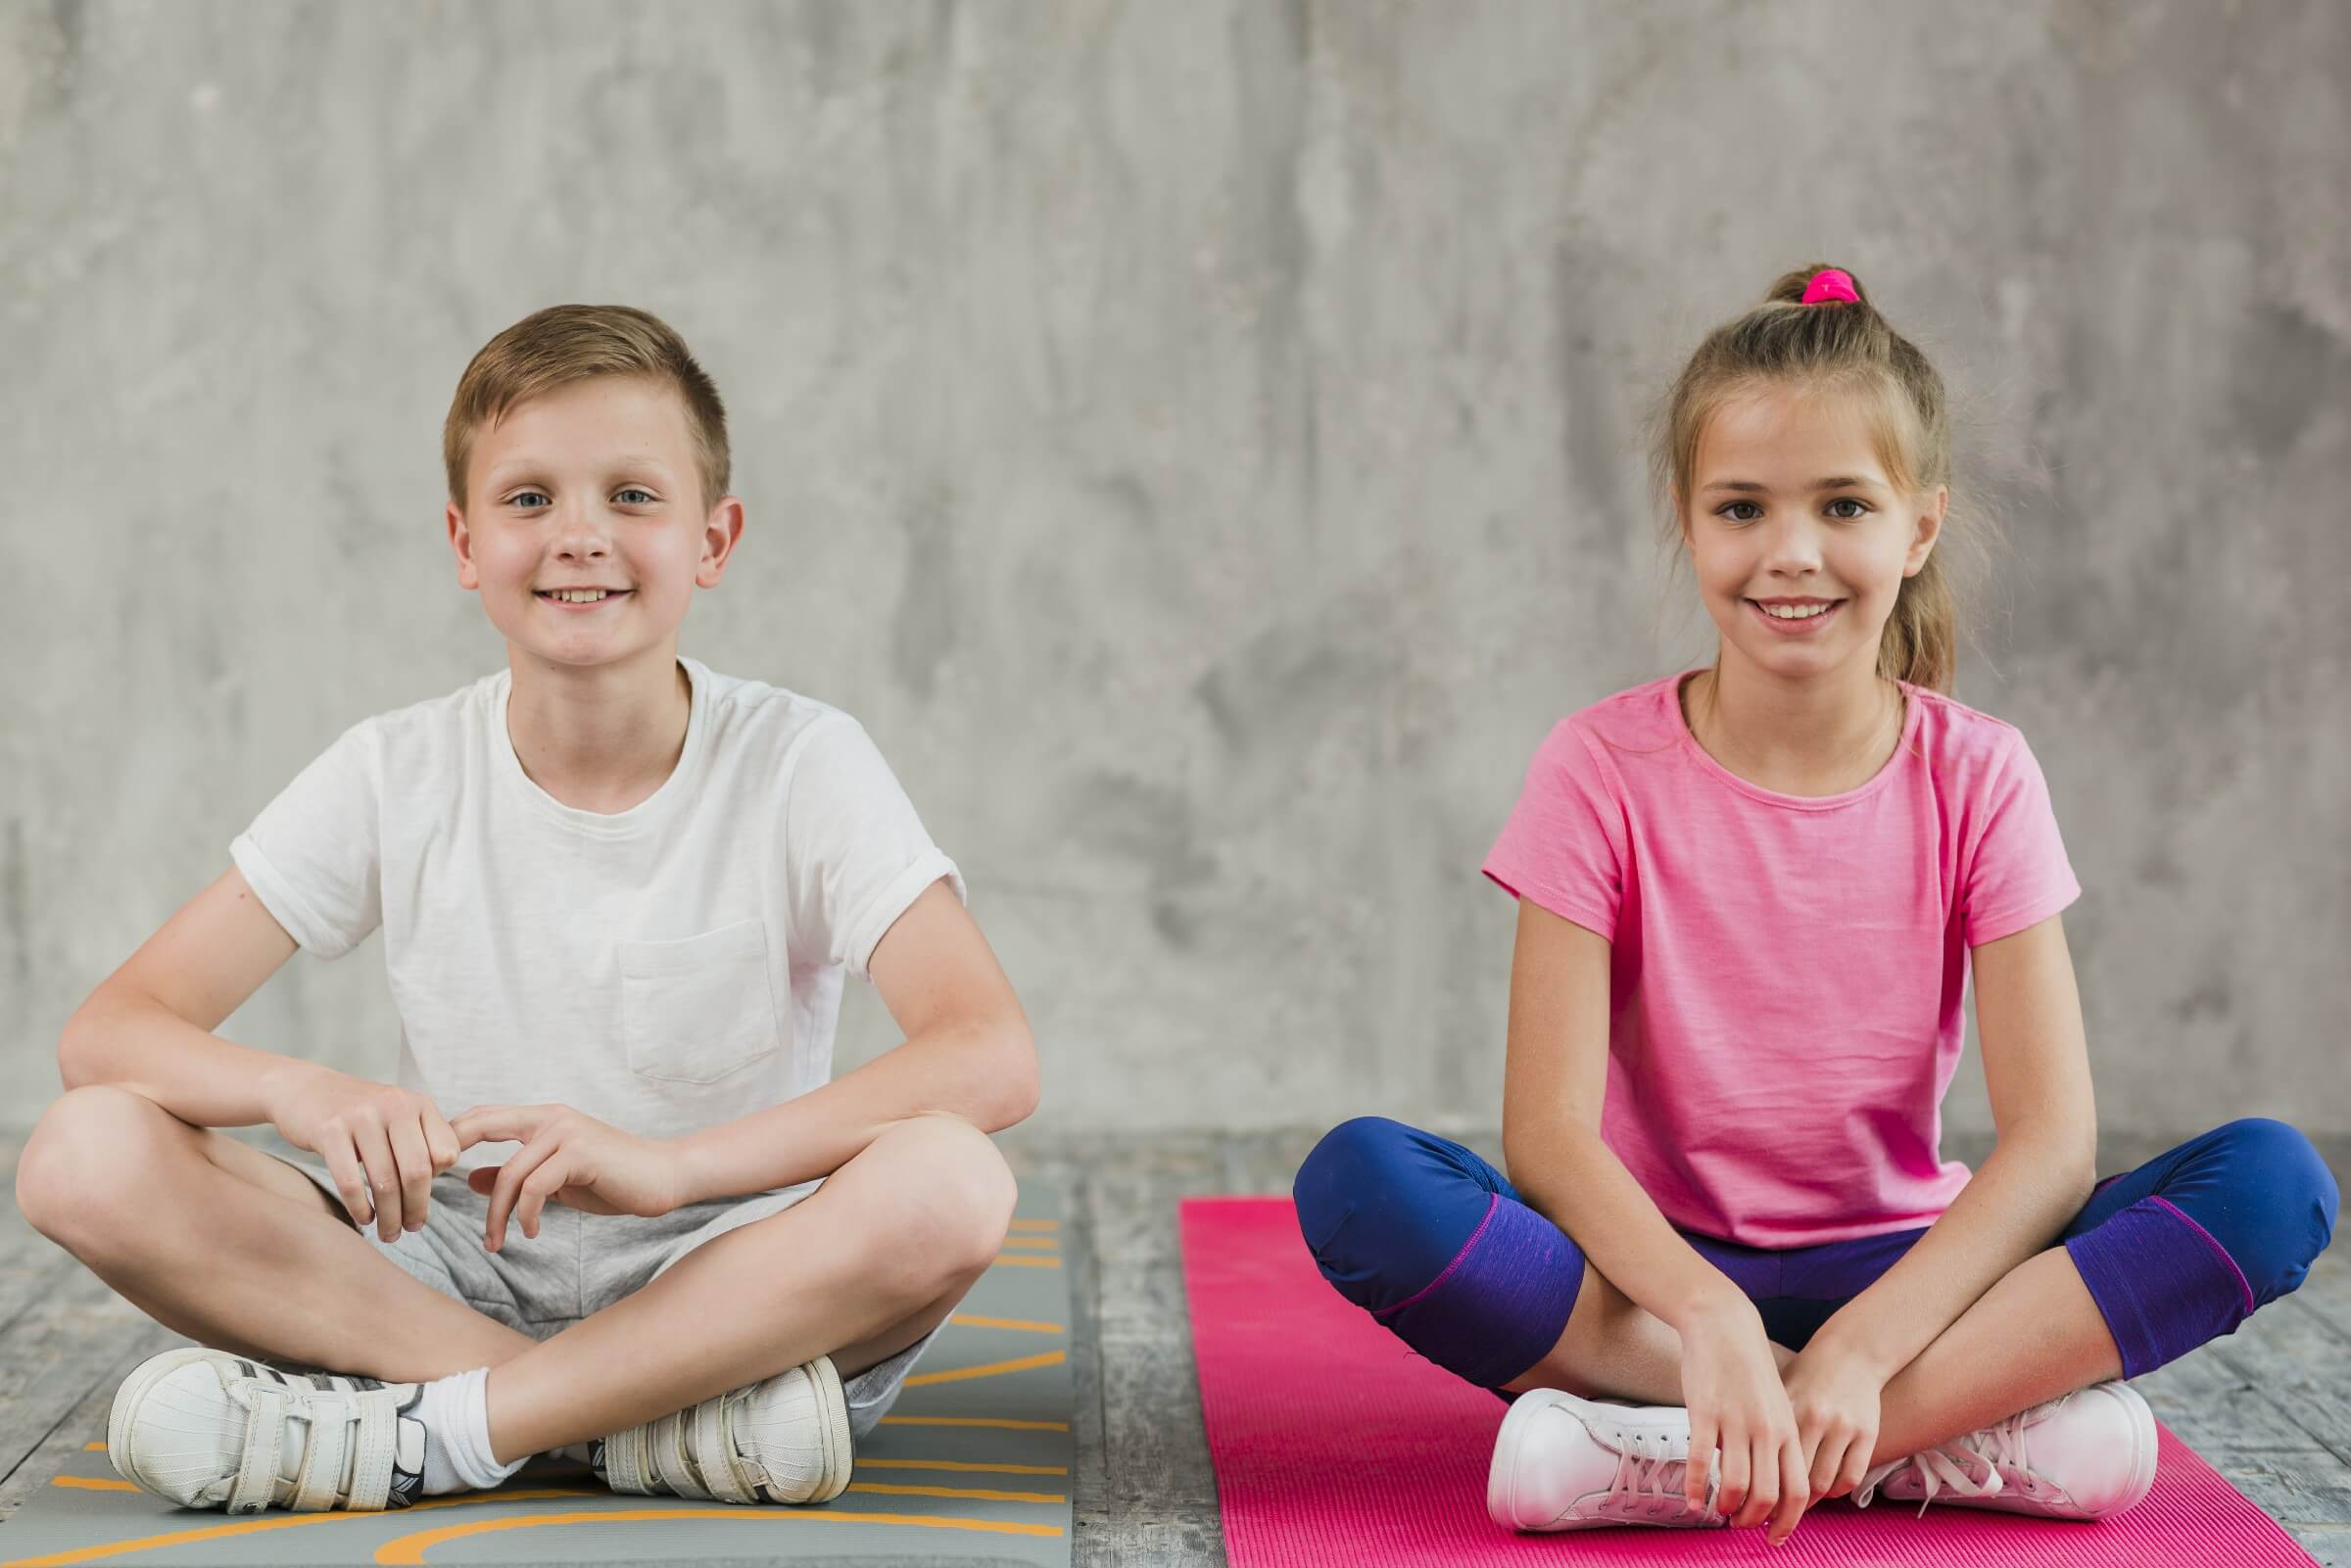 minimum exercise per day suggestions for the kids